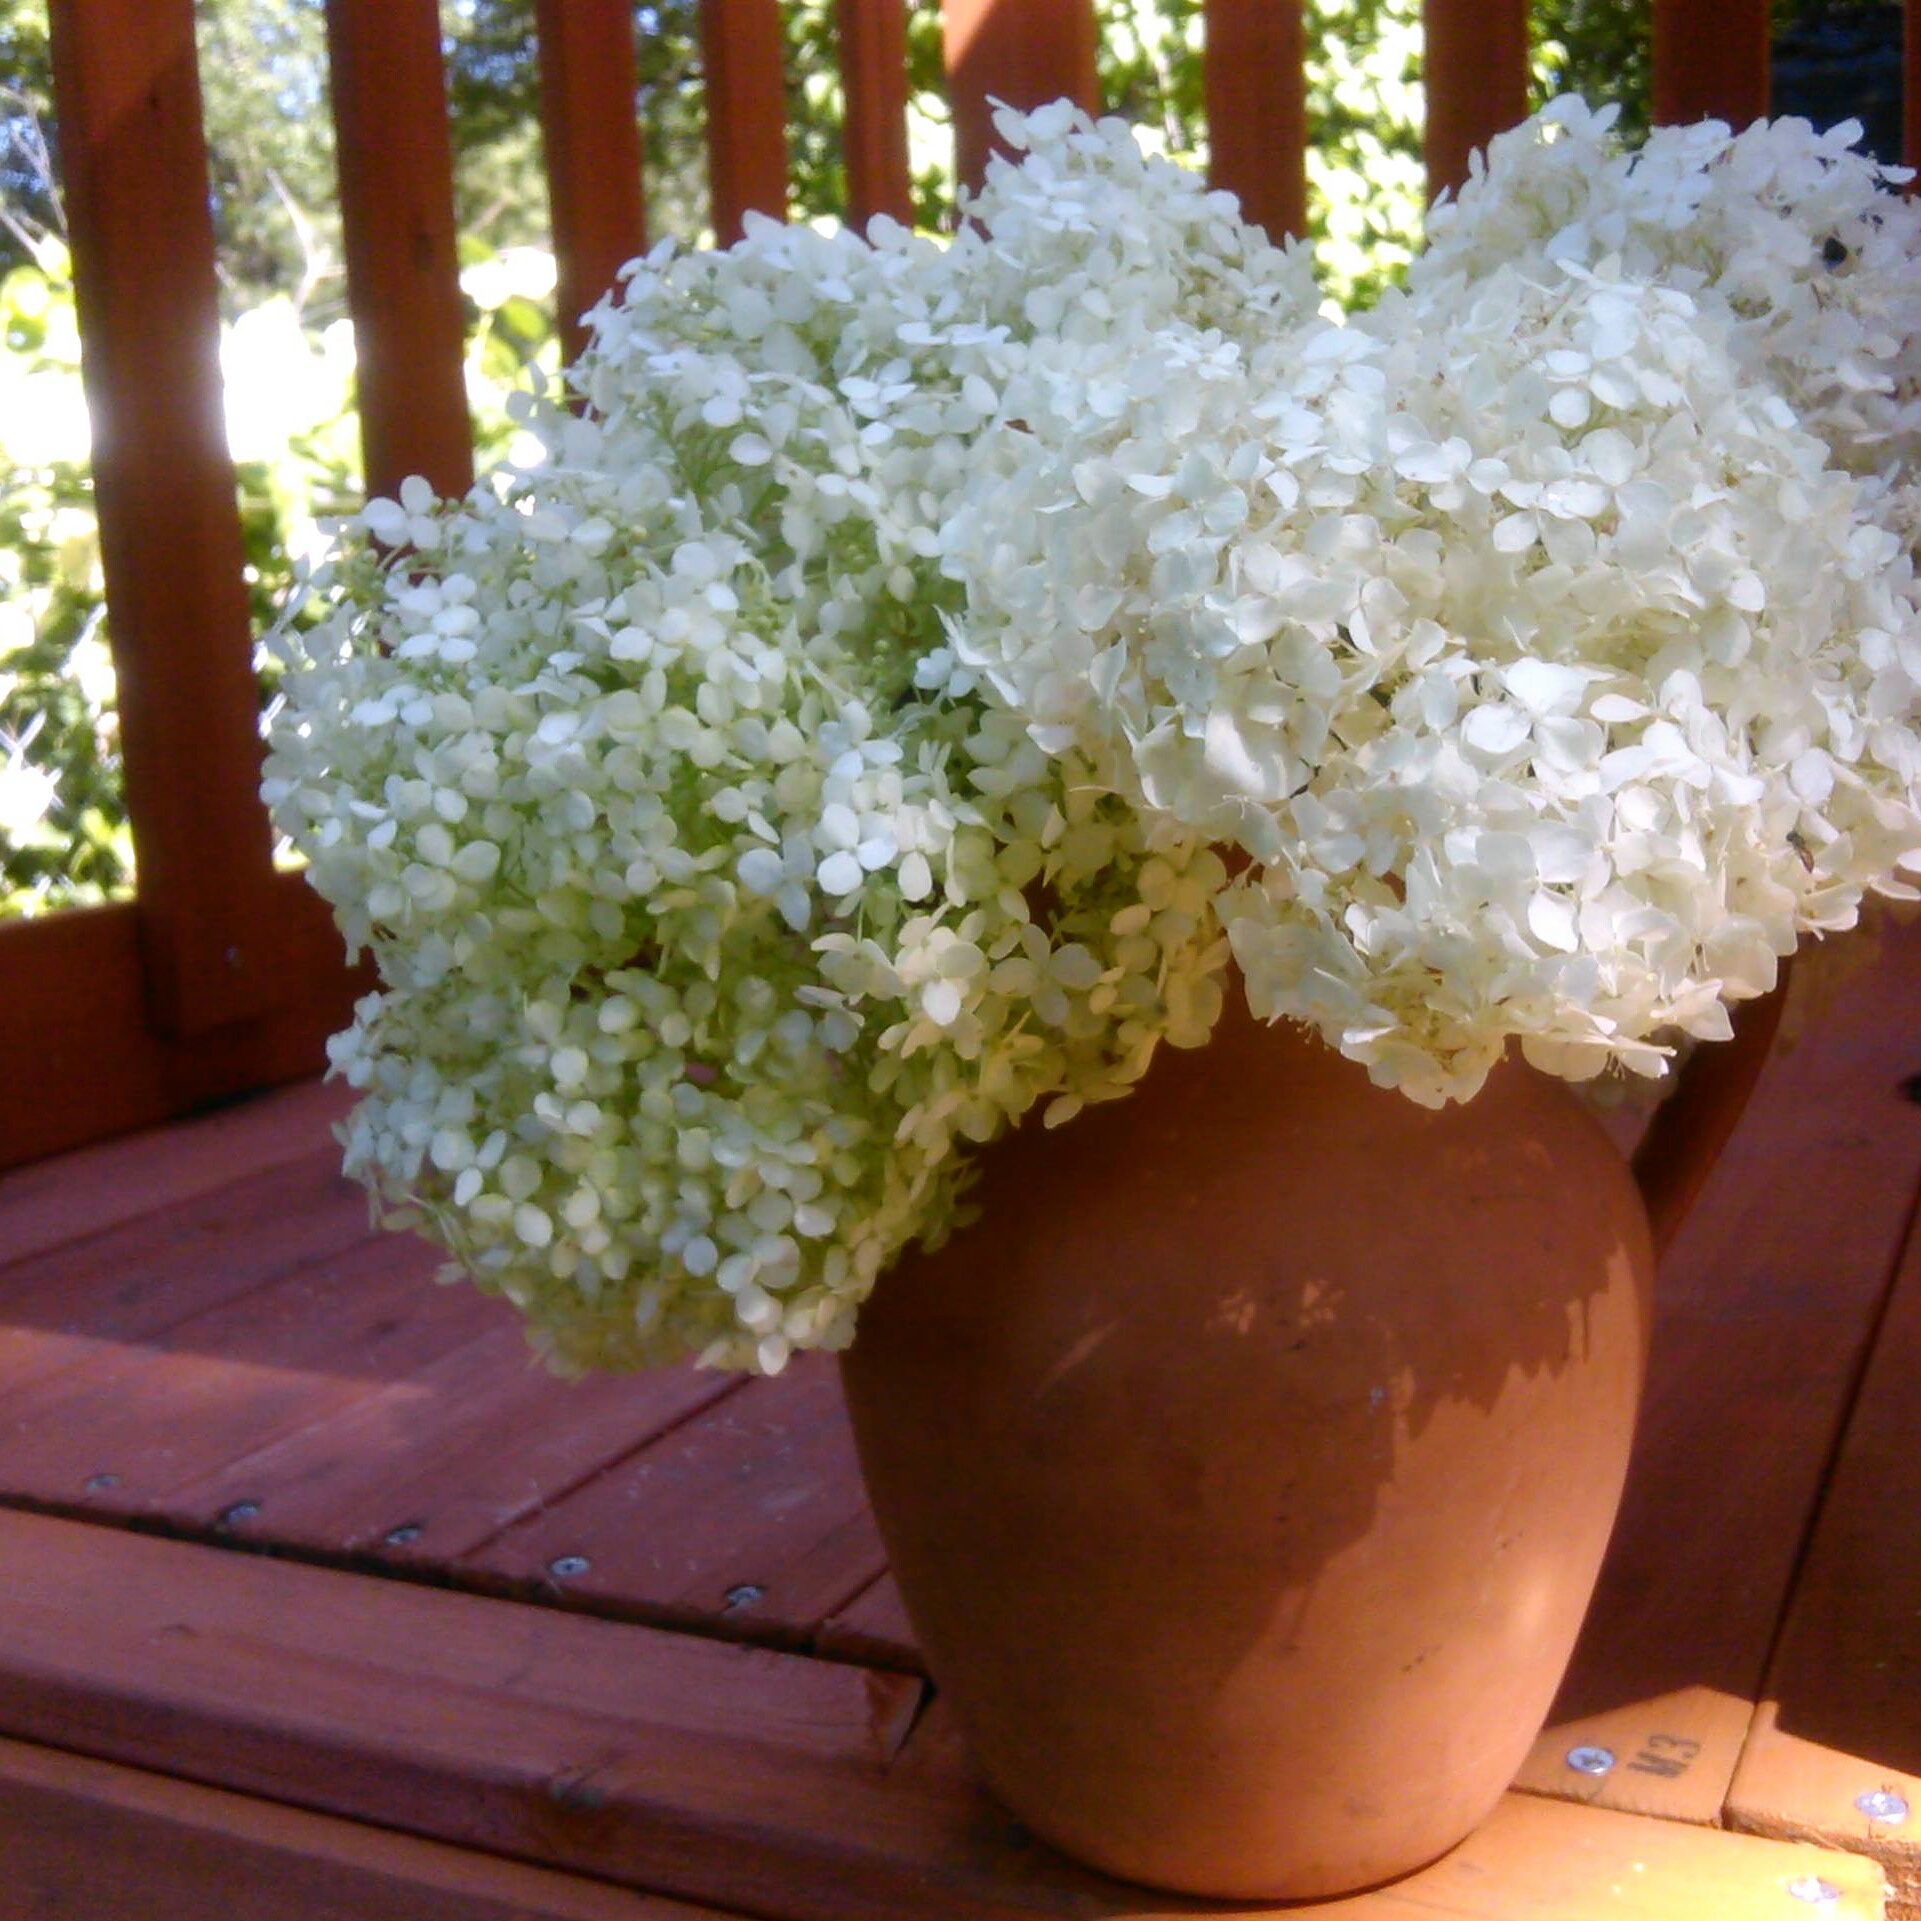 White and green hydrangea flower blossoms in a terra cotta pitcher sit on a wood deck in the early morning sunlight of summer. By Shalom Schultz Designs.